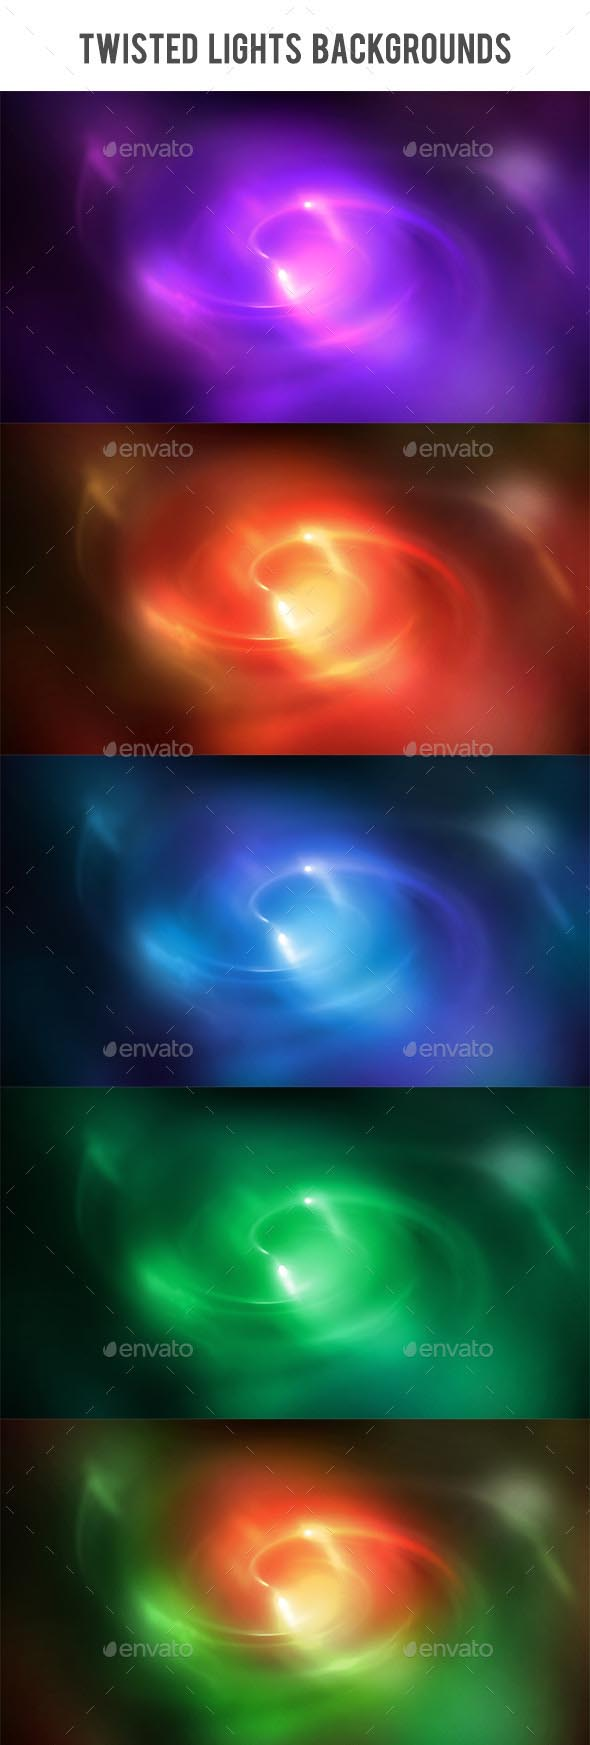 Twisted Lights Backgrounds